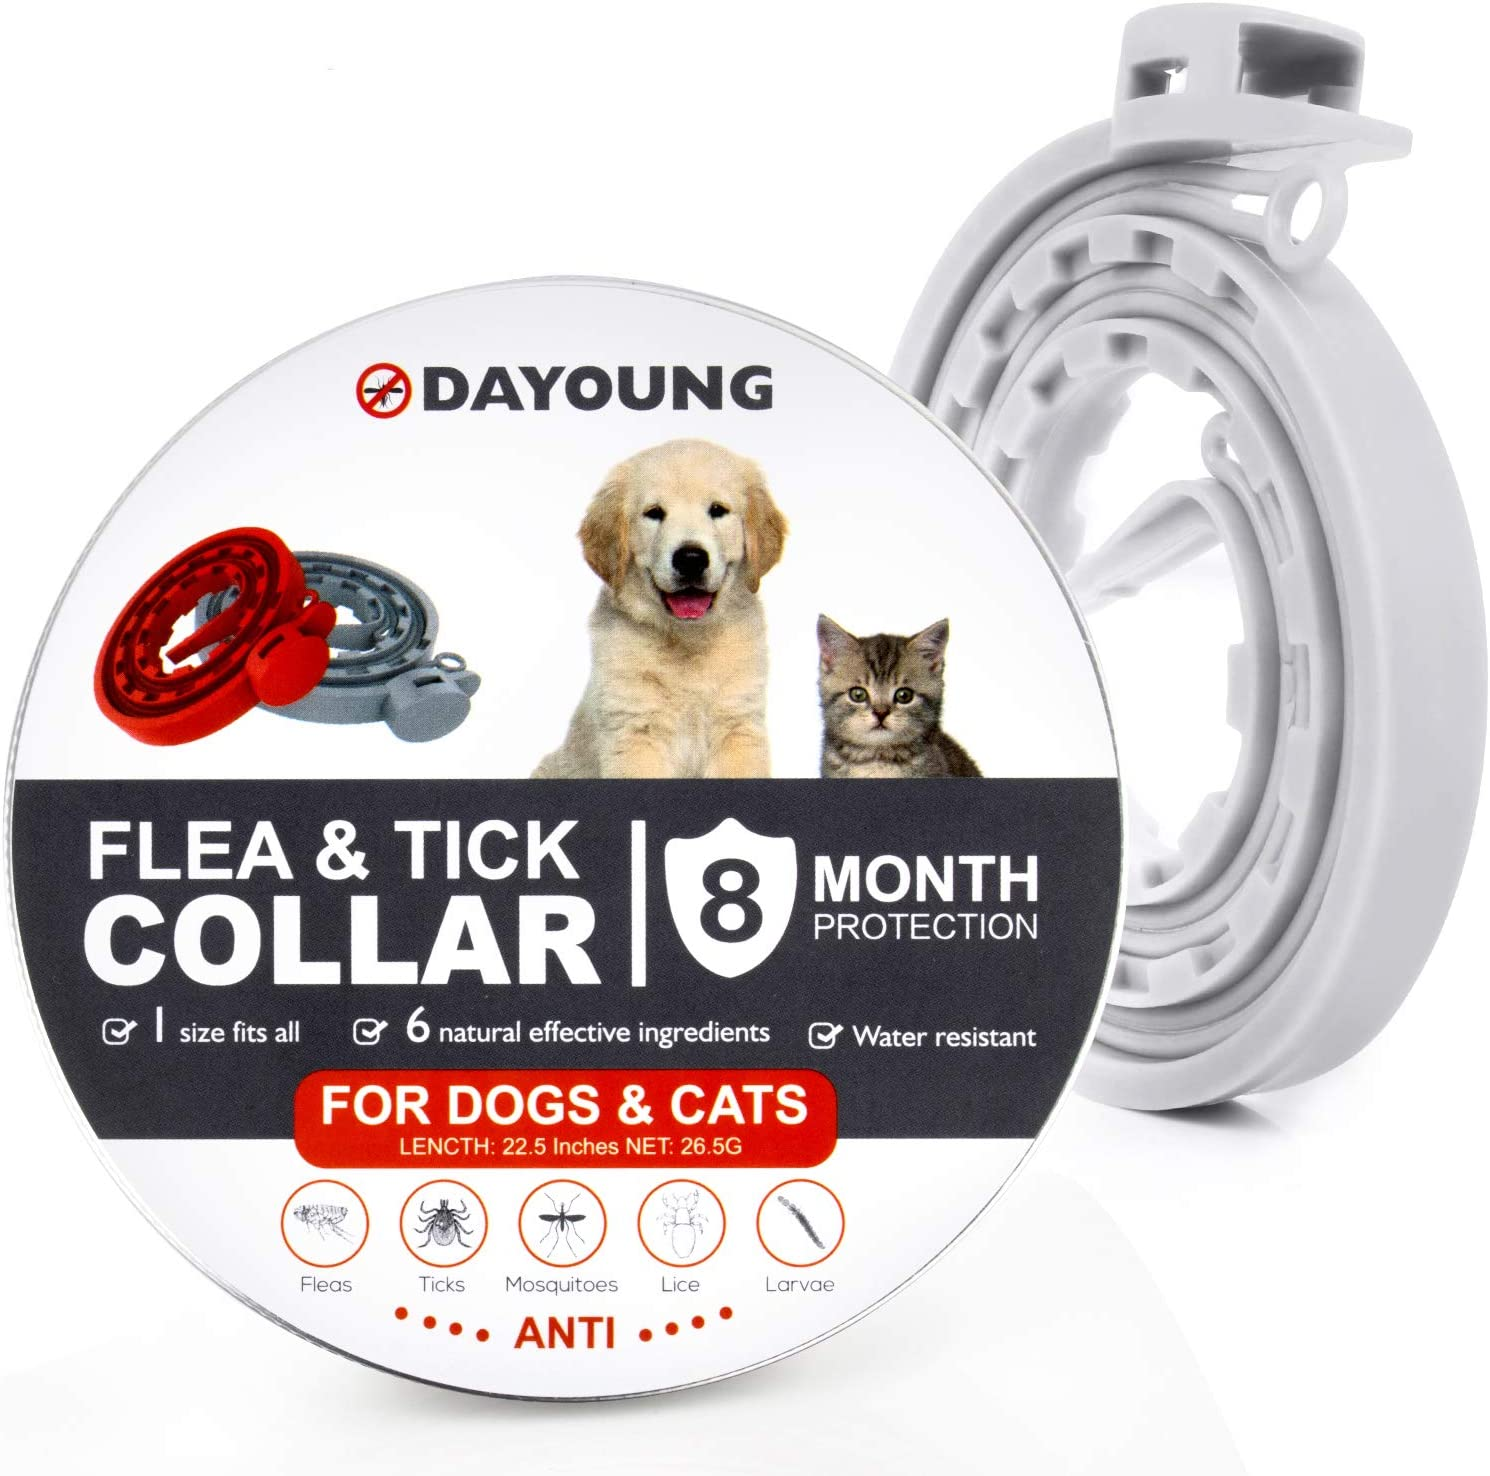 Fenvella Flea And Tick Collar 8 Month Protection Adjustable Waterproof Collar For Dog Puppy Kitten Cats Natural Safe Efficiently Repell Locust Lice Of Pets Grey Amazon Co Uk Pet Supplies